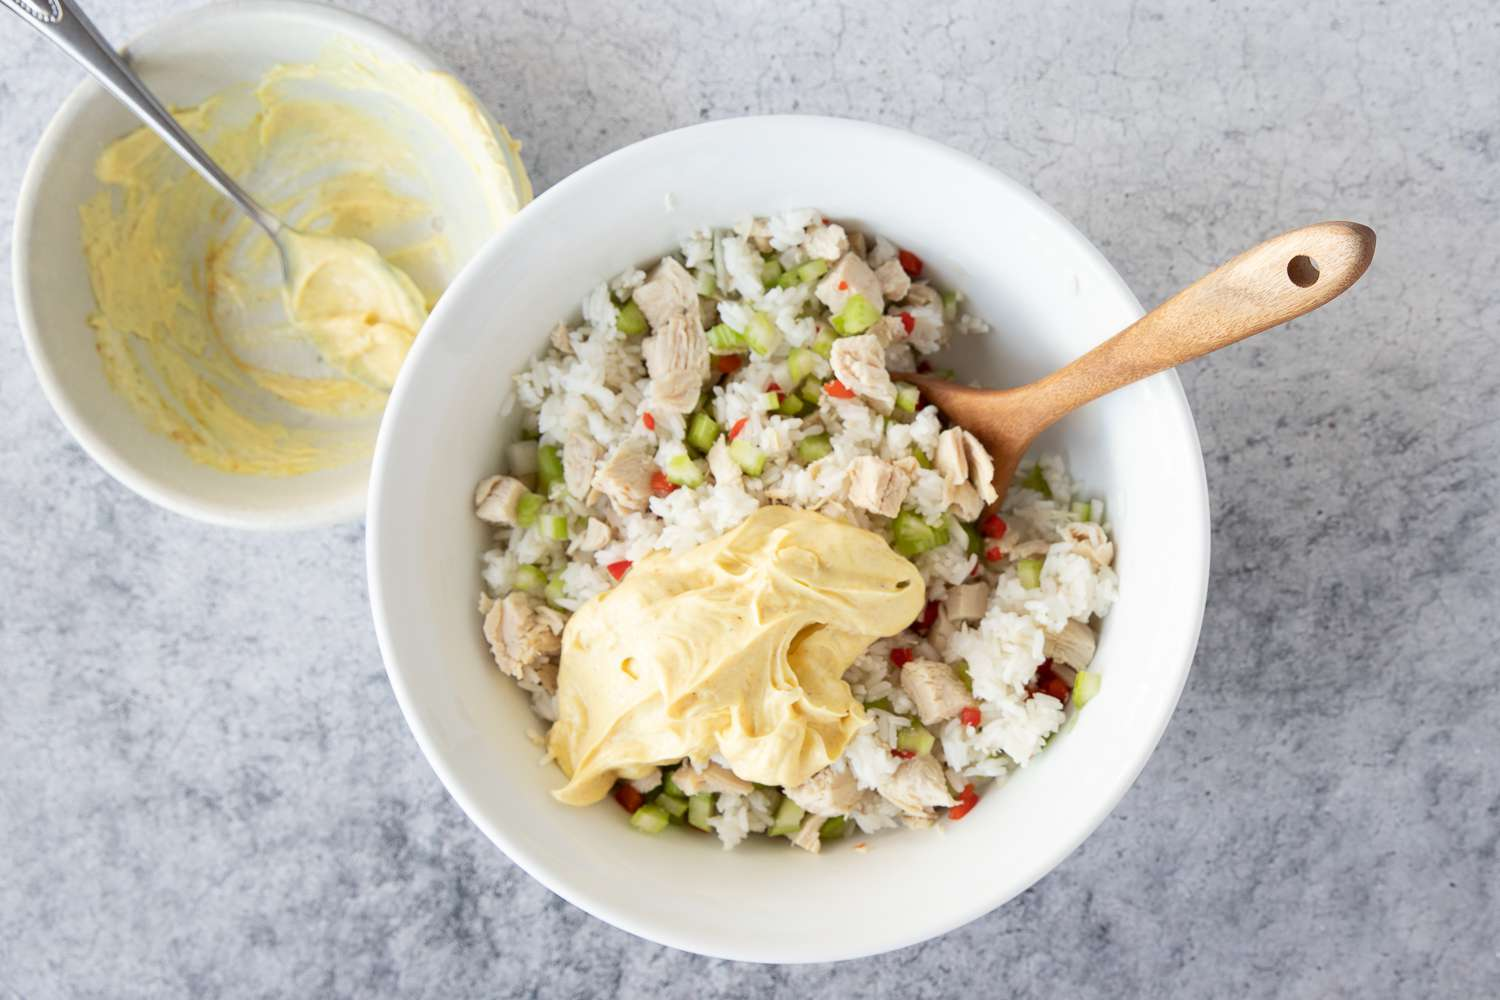 Gently toss mayonnaise mixture with rice and chicken mixture